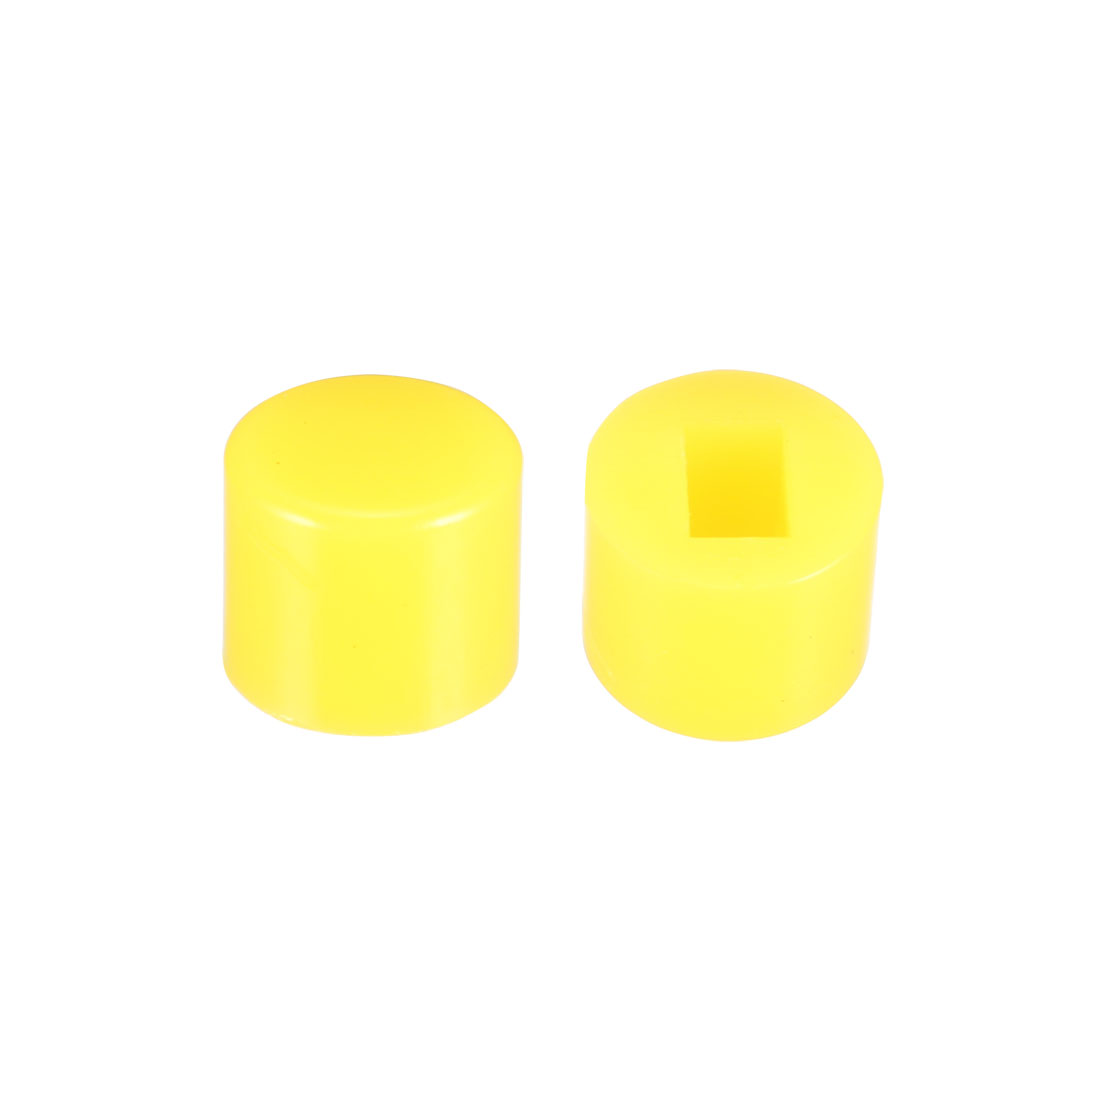 40Pcs Plastic 6x5mm Latching Pushbutton Tactile Switch Caps Cover Keycaps Yellow